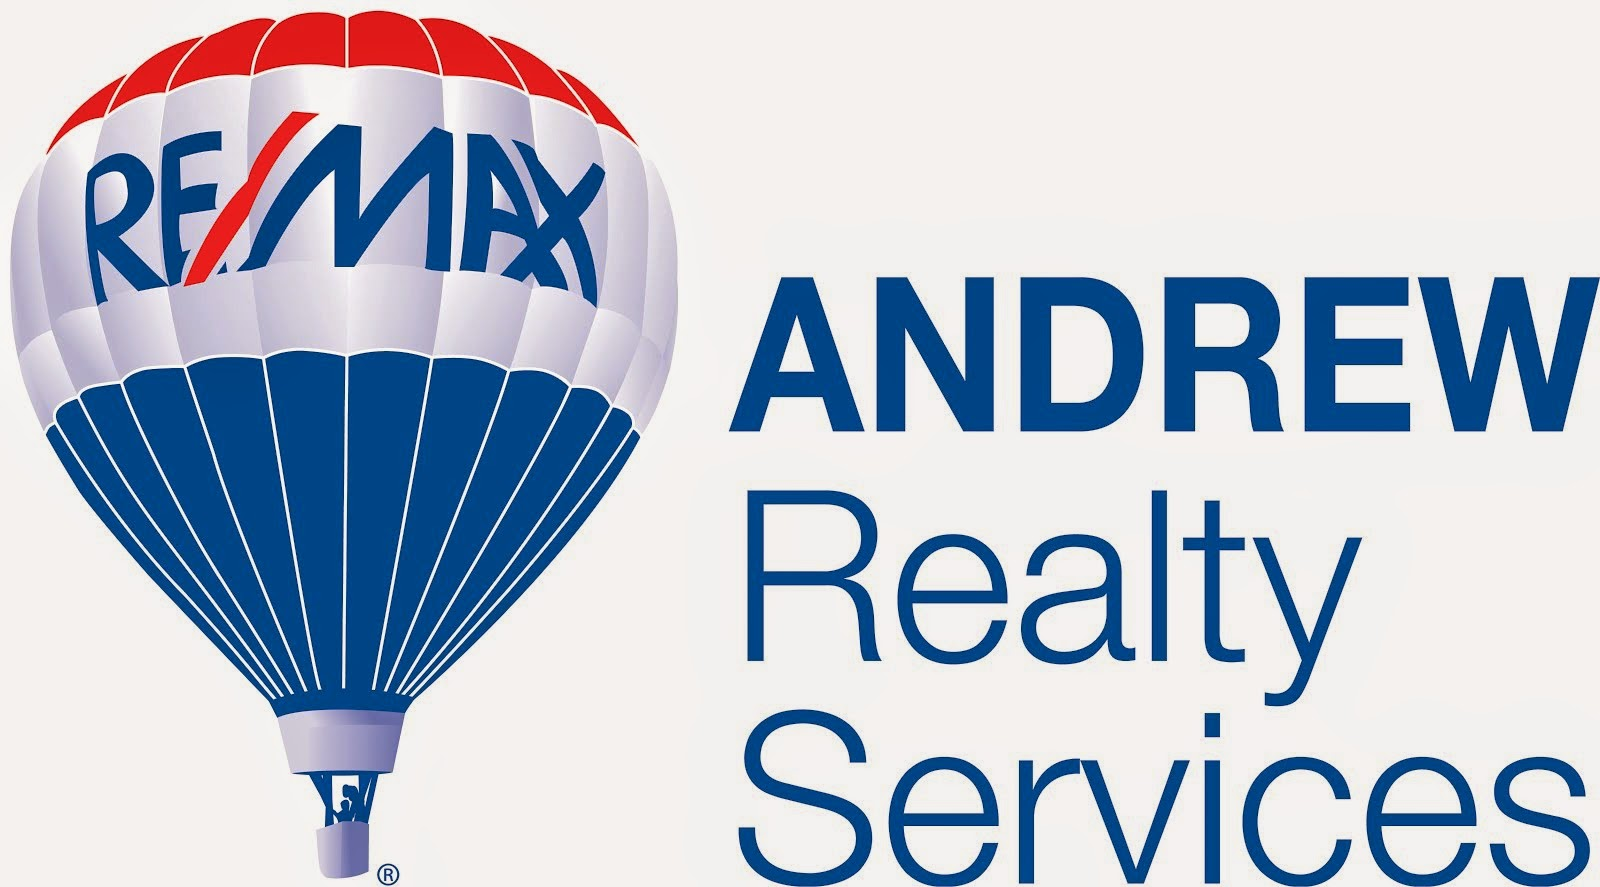 Carol McDonald Macri RE/MAX Andrew Realty Services